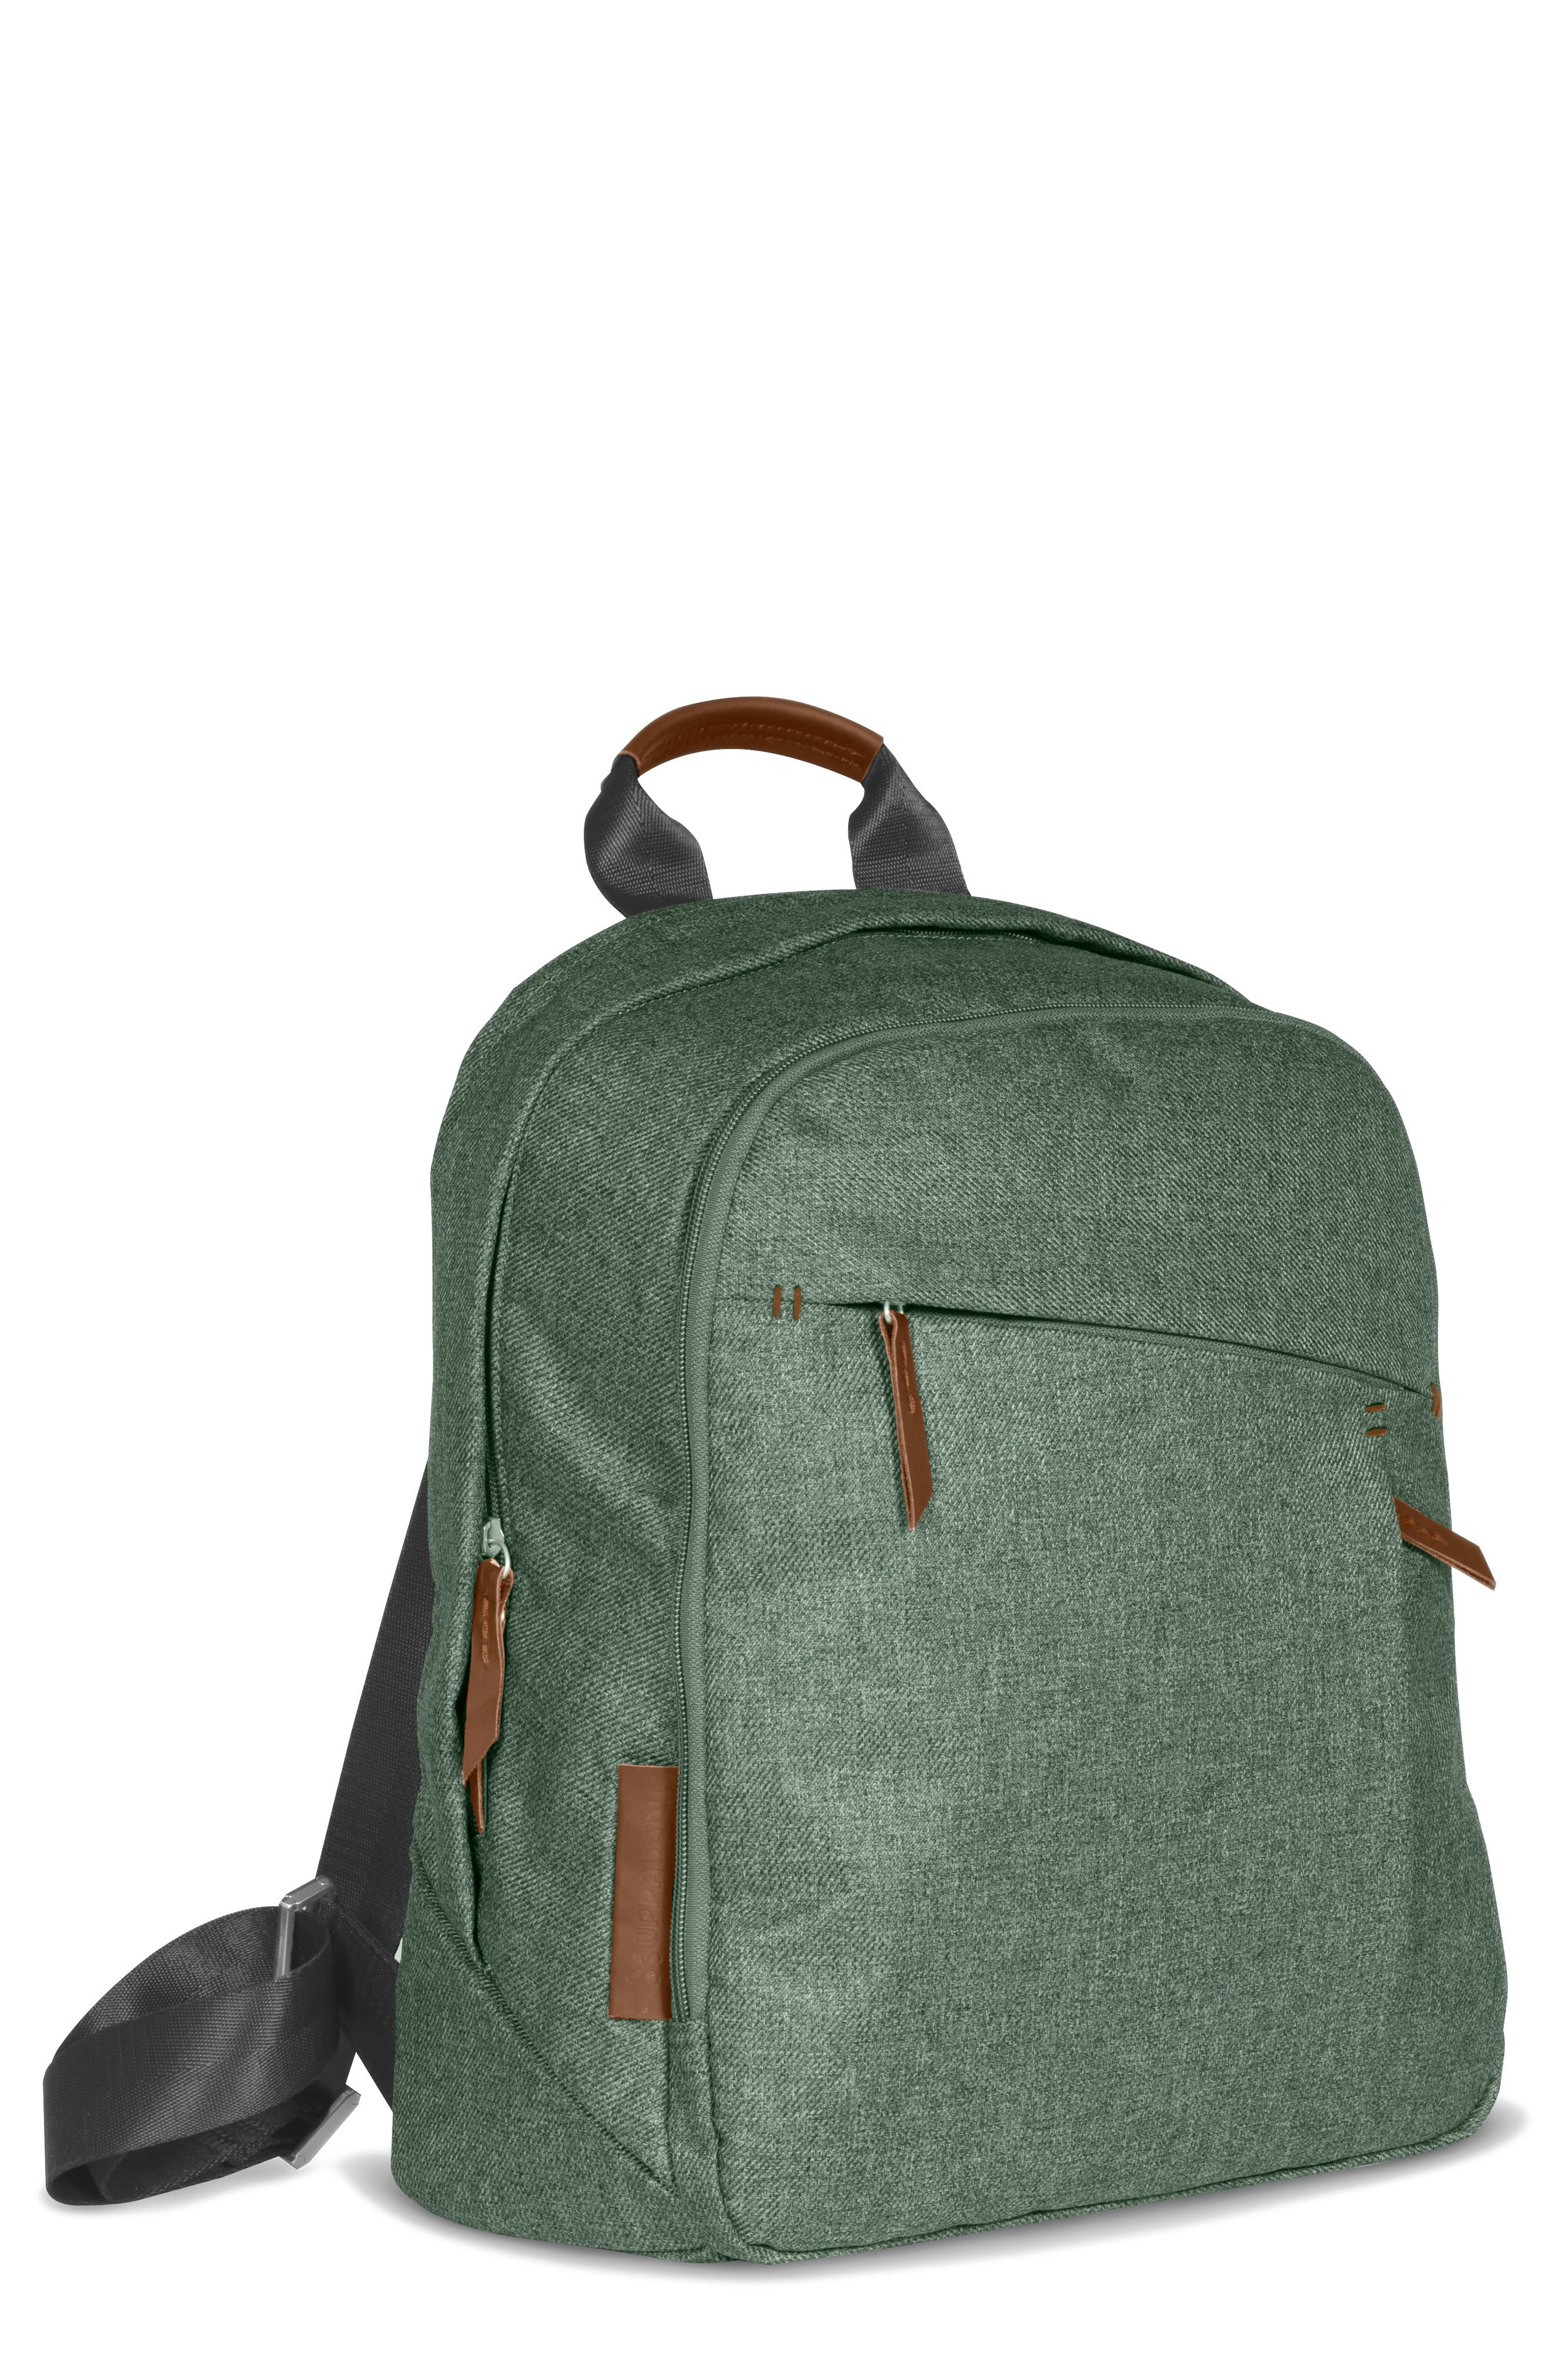 Infant Uppababy Diaper Changing Backpack  Green